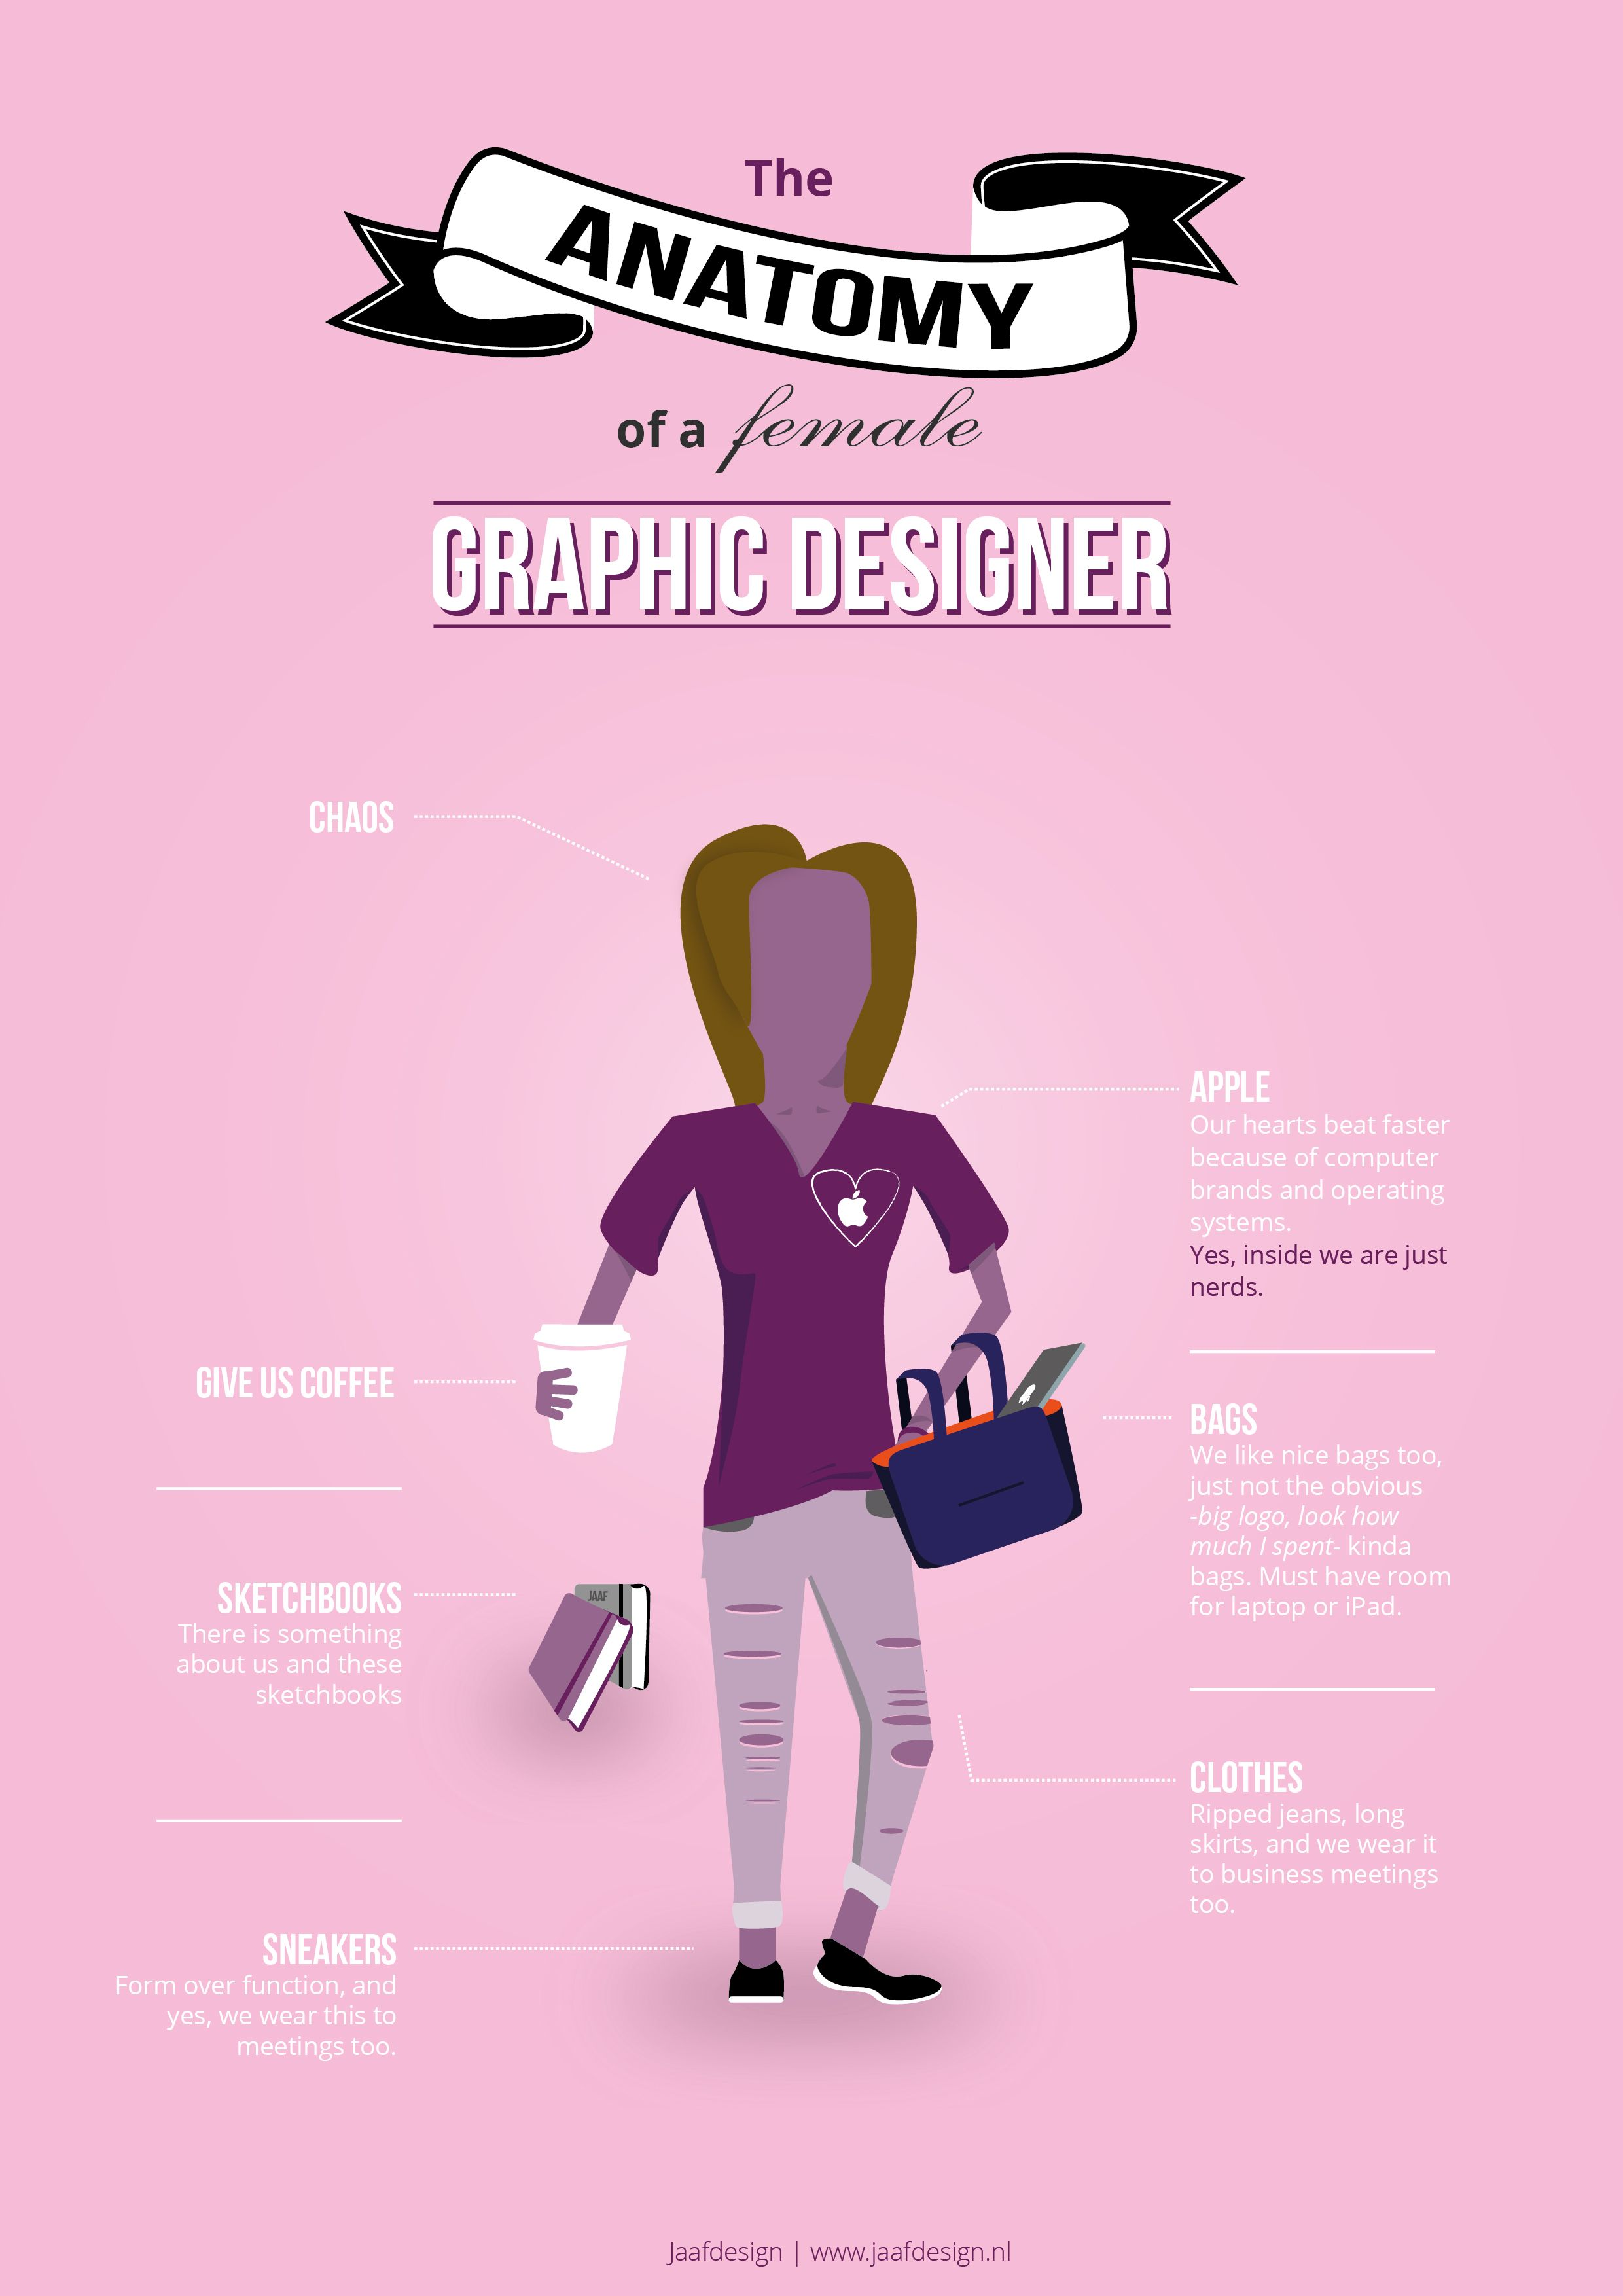 Anatomy Of The Female Graphic Designer Slightly Different From The